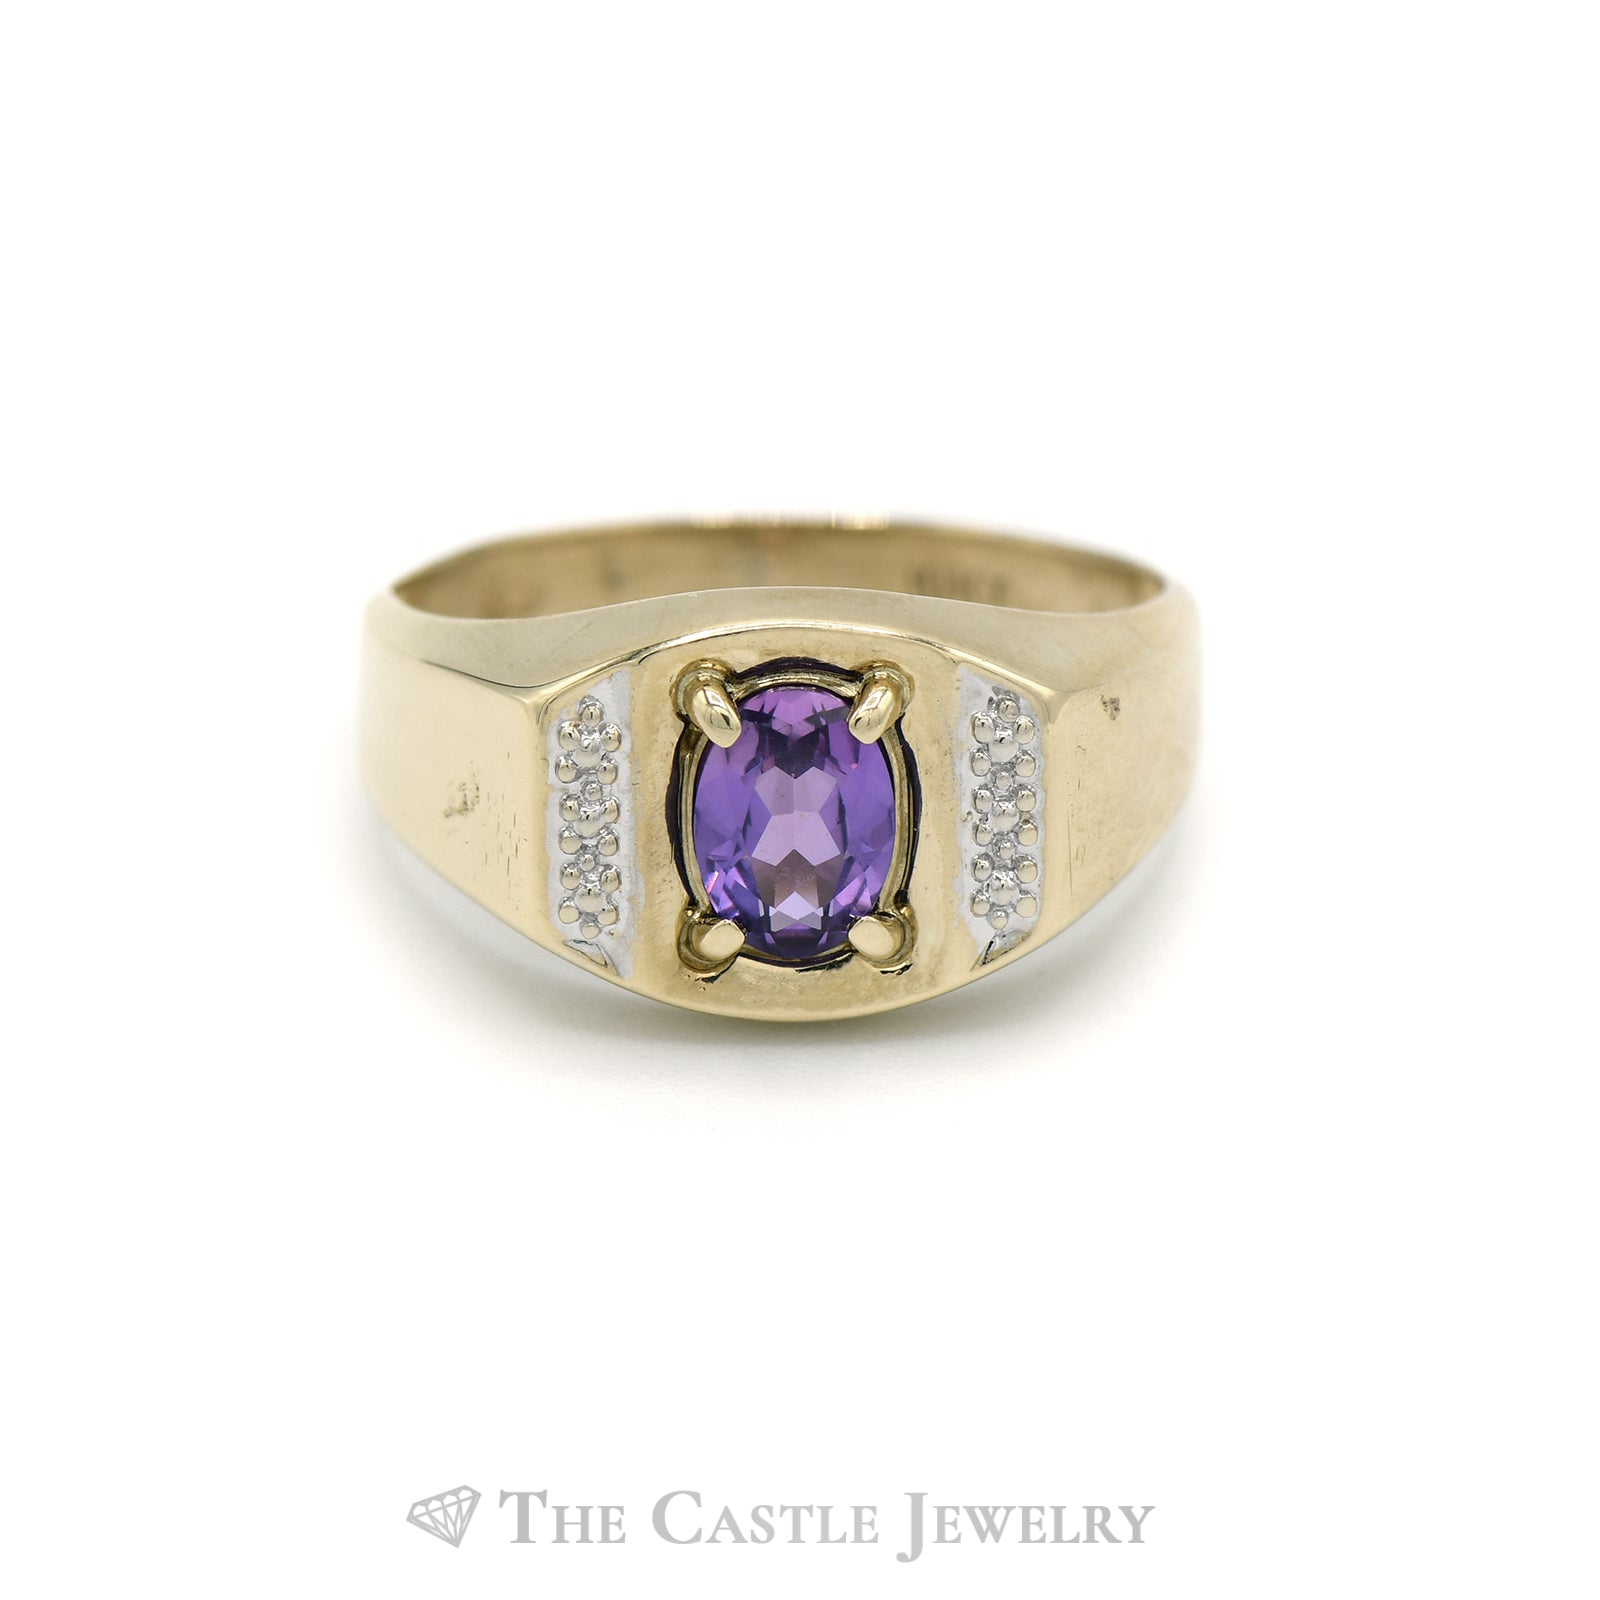 Men's Oval Cut Amethyst Ring in 10KT Yellow Gold